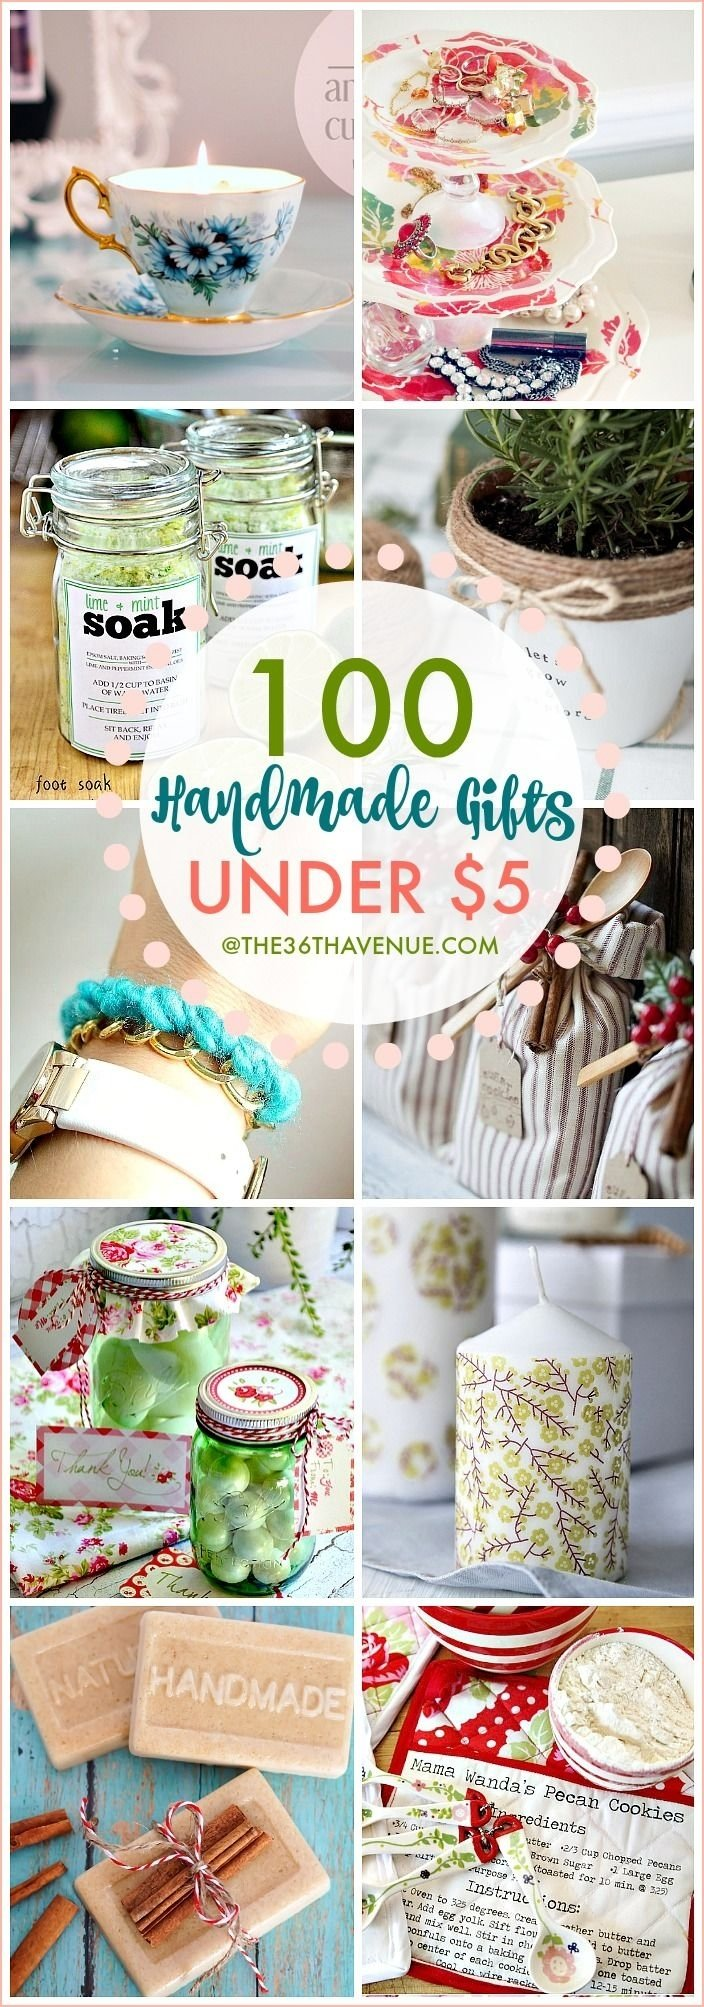 10 Fabulous Top 5 Christmas Gift Ideas For Women 51 best diy gift ideas images on pinterest diy presents gift 2020